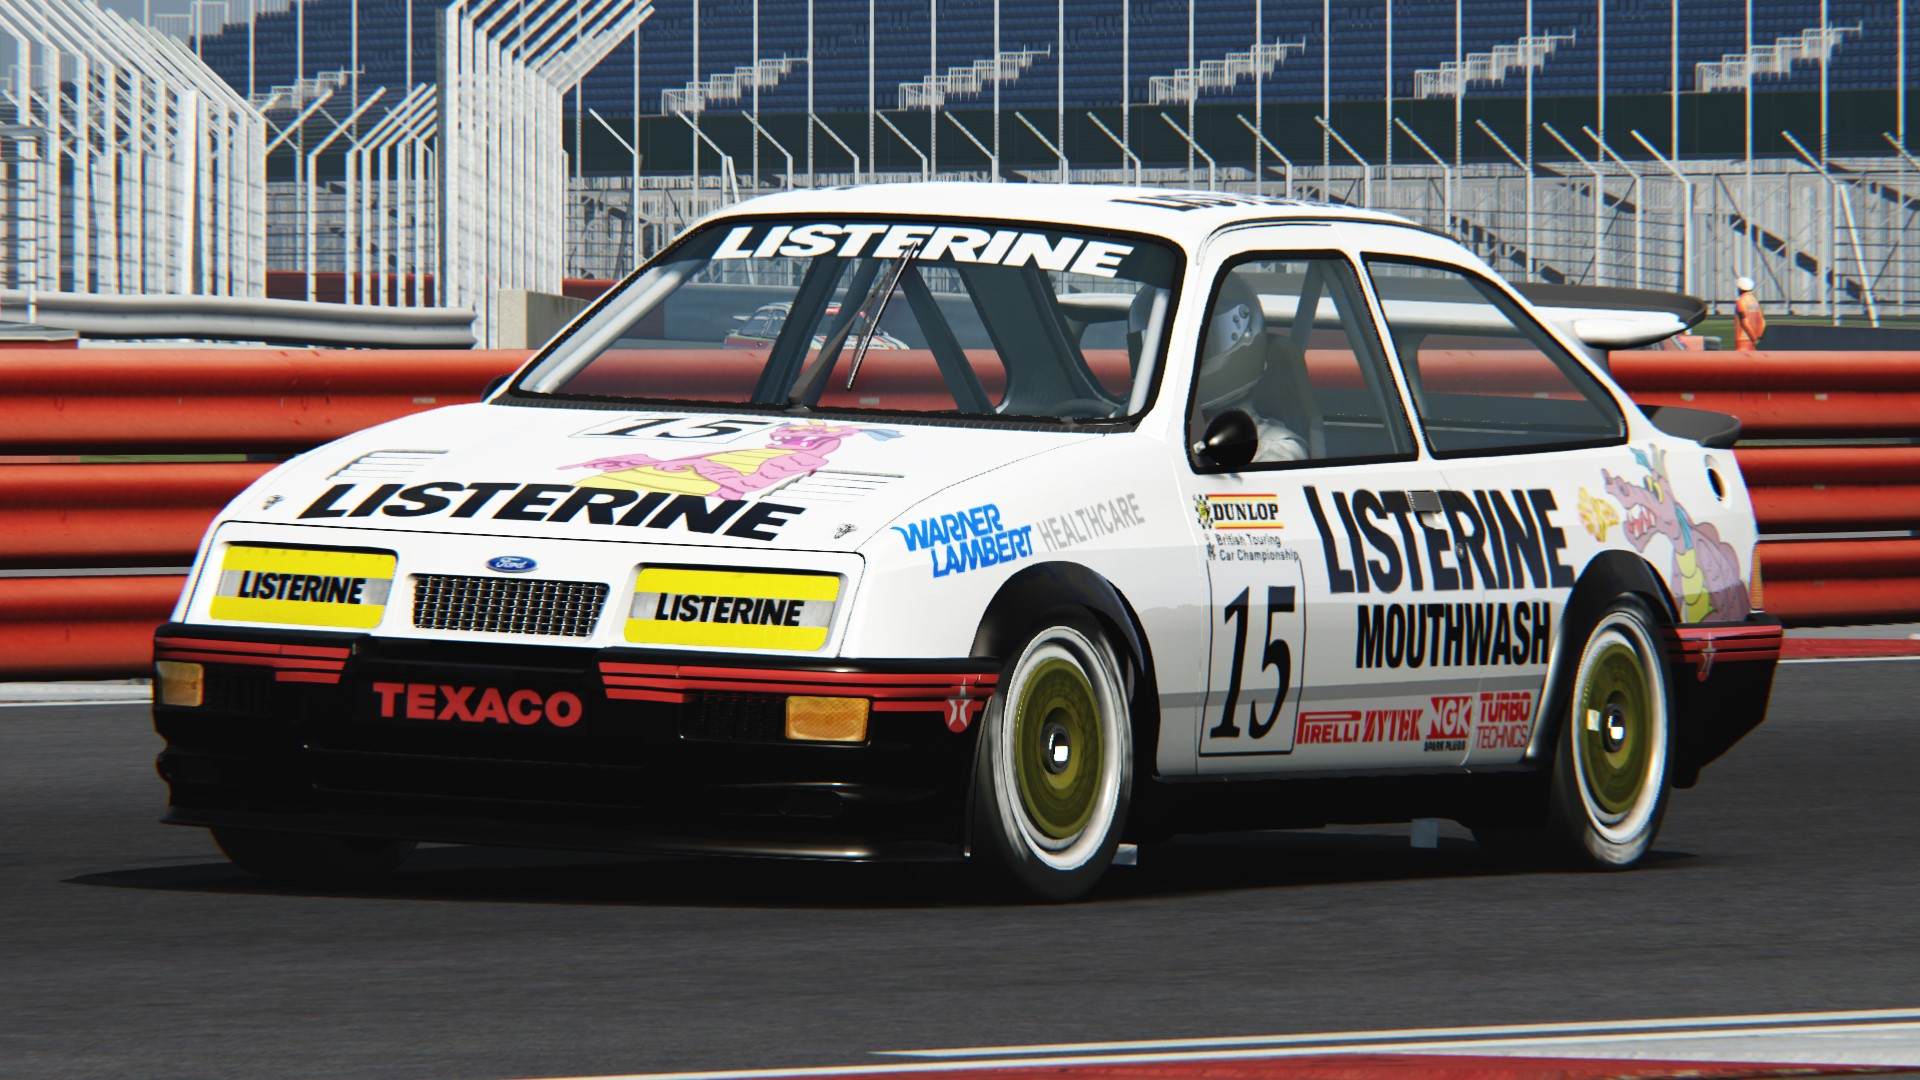 Screenshot_ford_sierra_cosworth_rs500_gra_silverstone-national_12-9-115-20-13-39.jpg